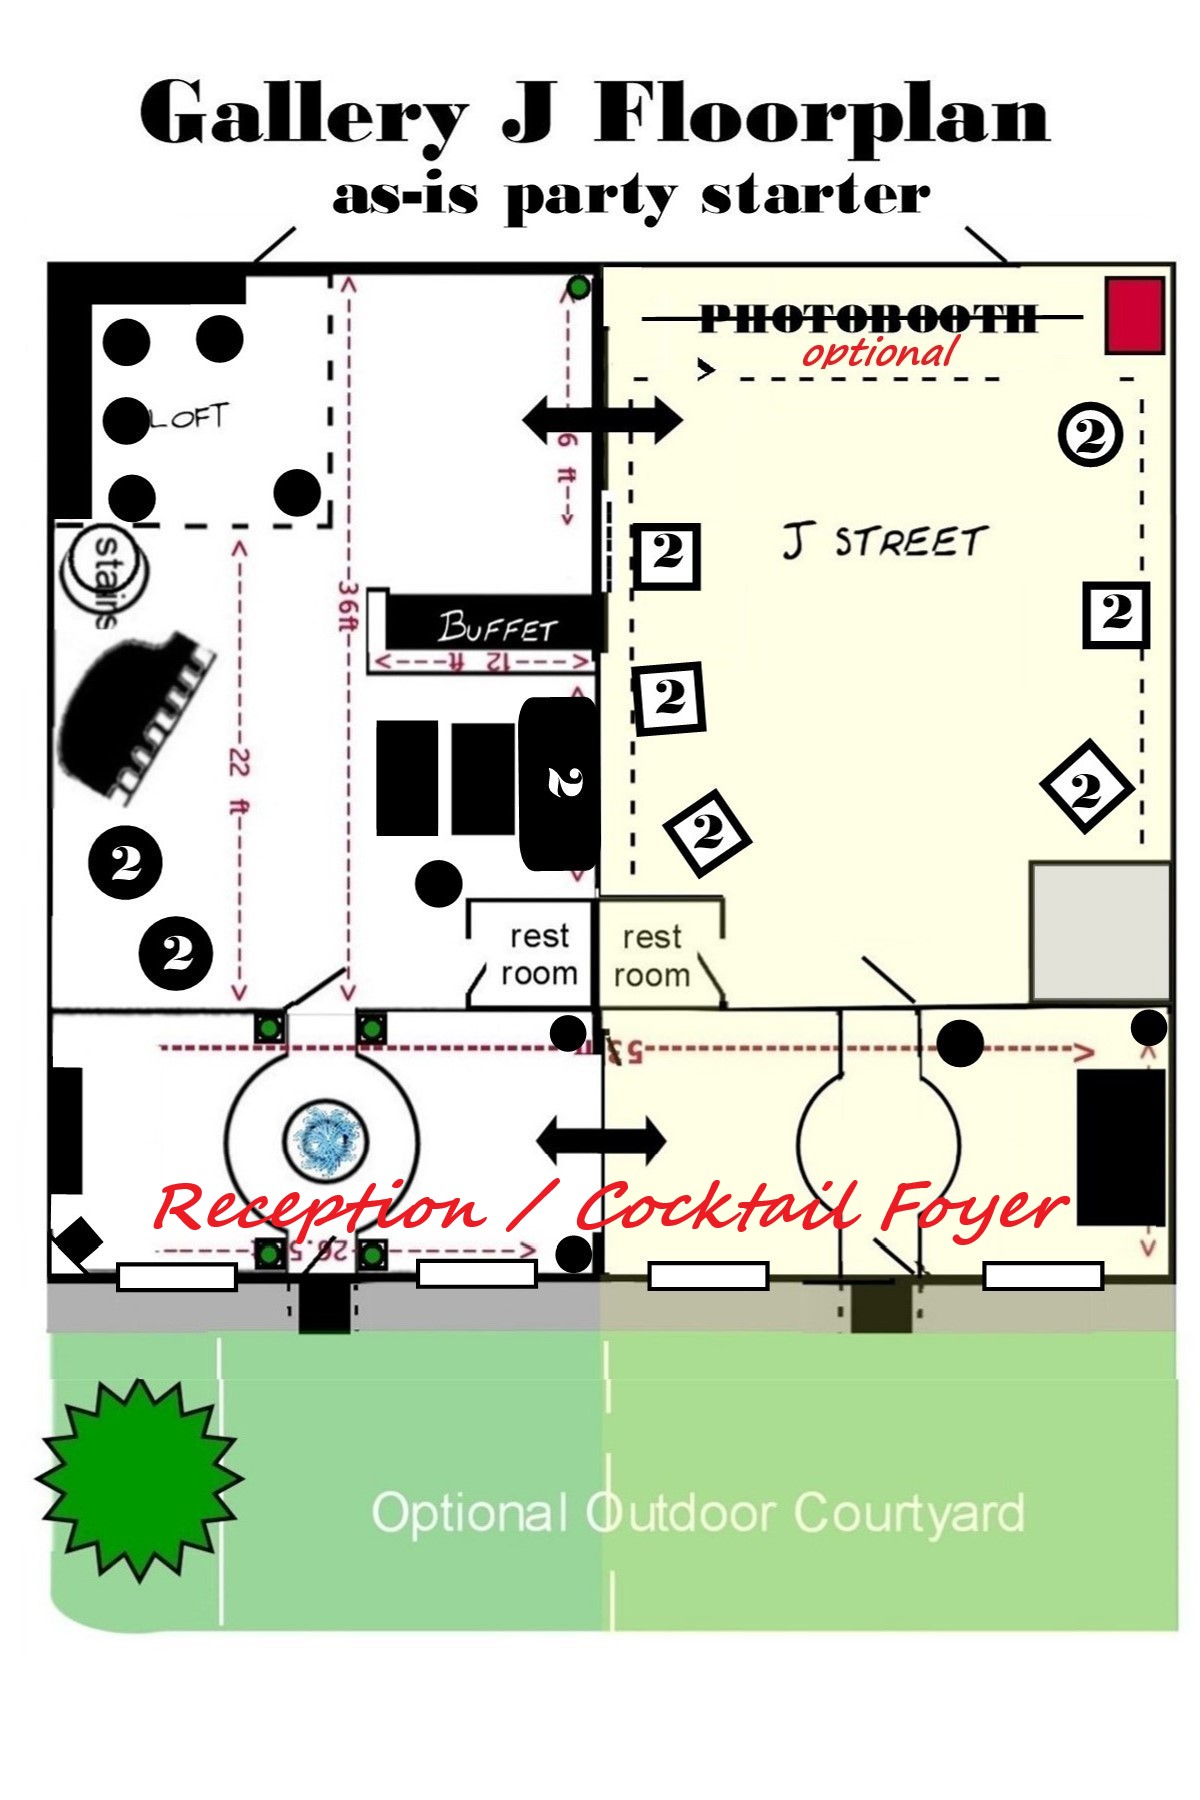 AS IS floorplan - Copy.jpg